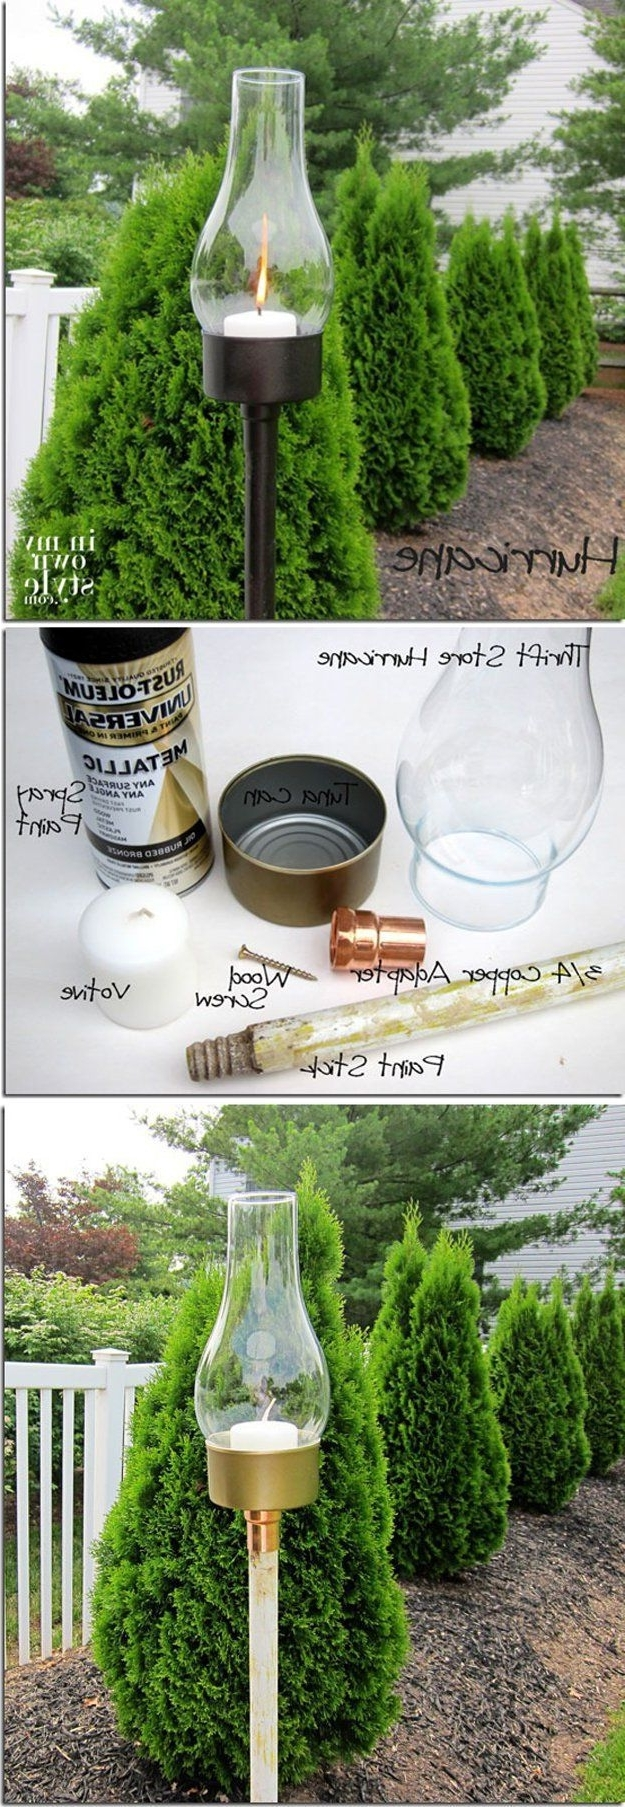 Cheap Diy Outdoor Lantern Lightsdiy Ready At Http://diyready With Most Up To Date Inexpensive Outdoor Lanterns (View 3 of 20)